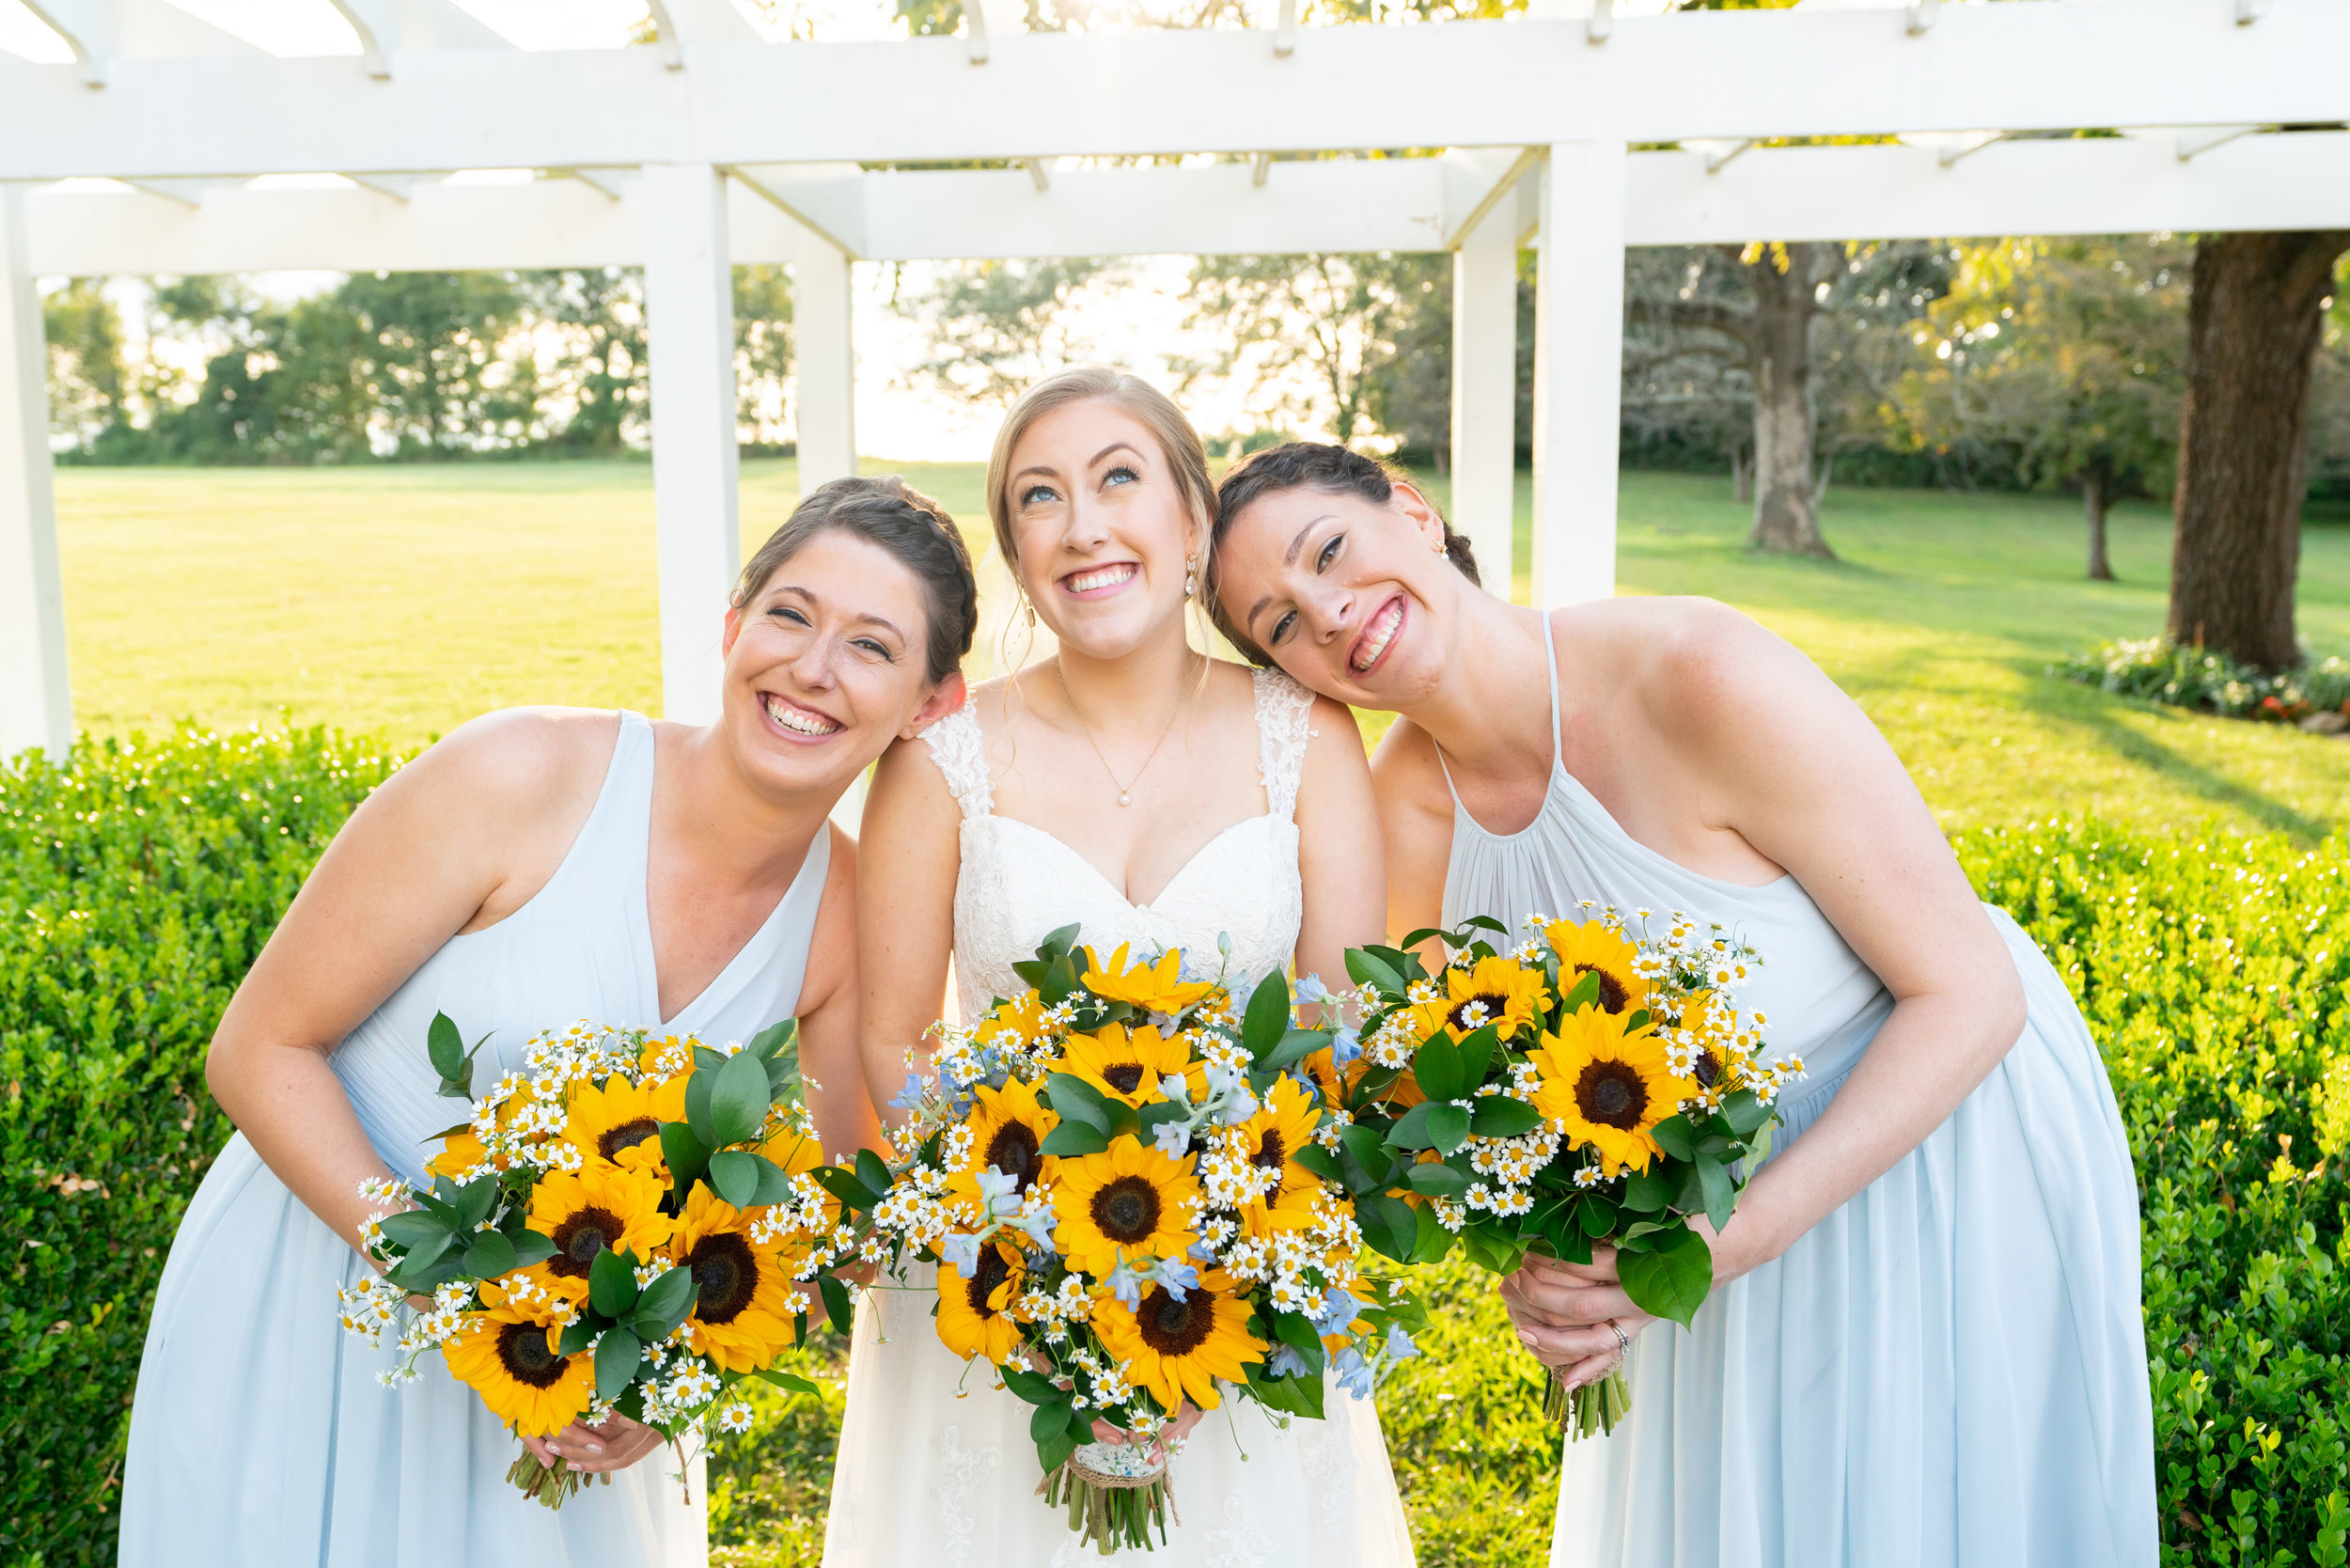 Bride and bridesmaids in blue azazie and sunflower bouquets at Frederick wedding venue